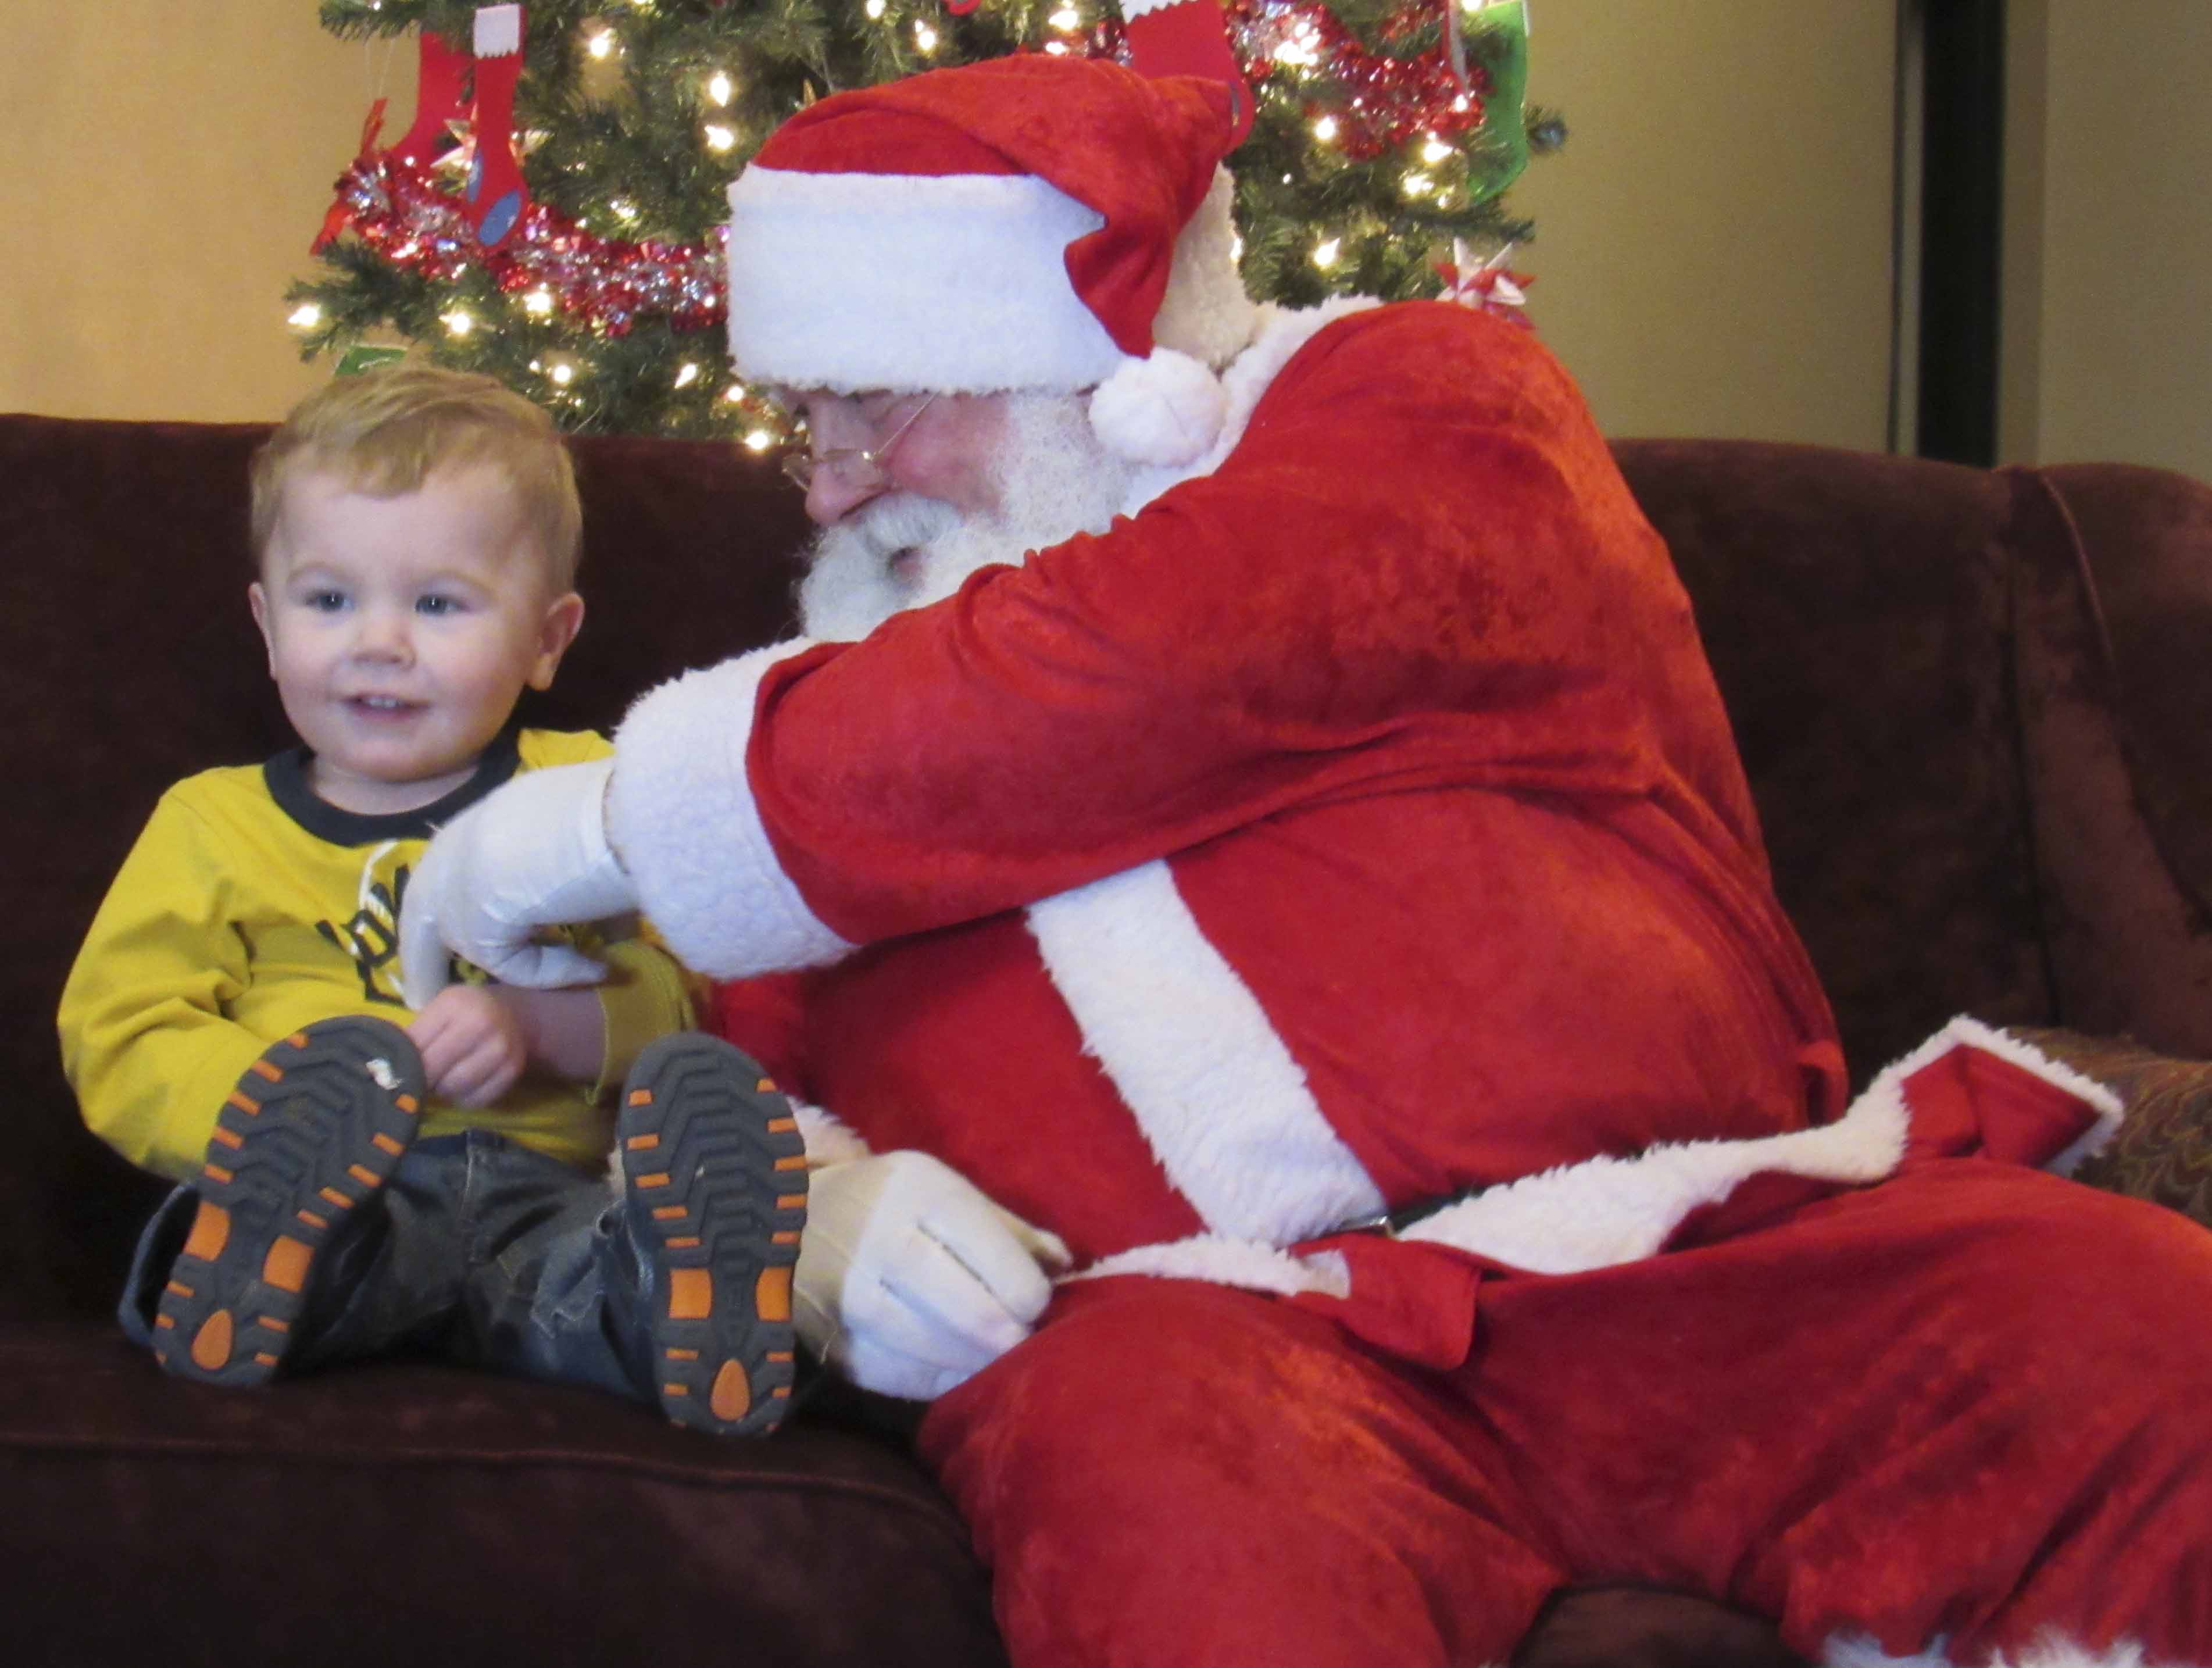 Evan Fitzpatrick was excited to see Santa Claus on Dec. 9. The Monticello Area Chamber of Commerce welcomed Santa to town for all to see. He will be back in Monticell on Dec. 12 and 14, 4:30-6:30 p.m. (Photos by Kim Brooks